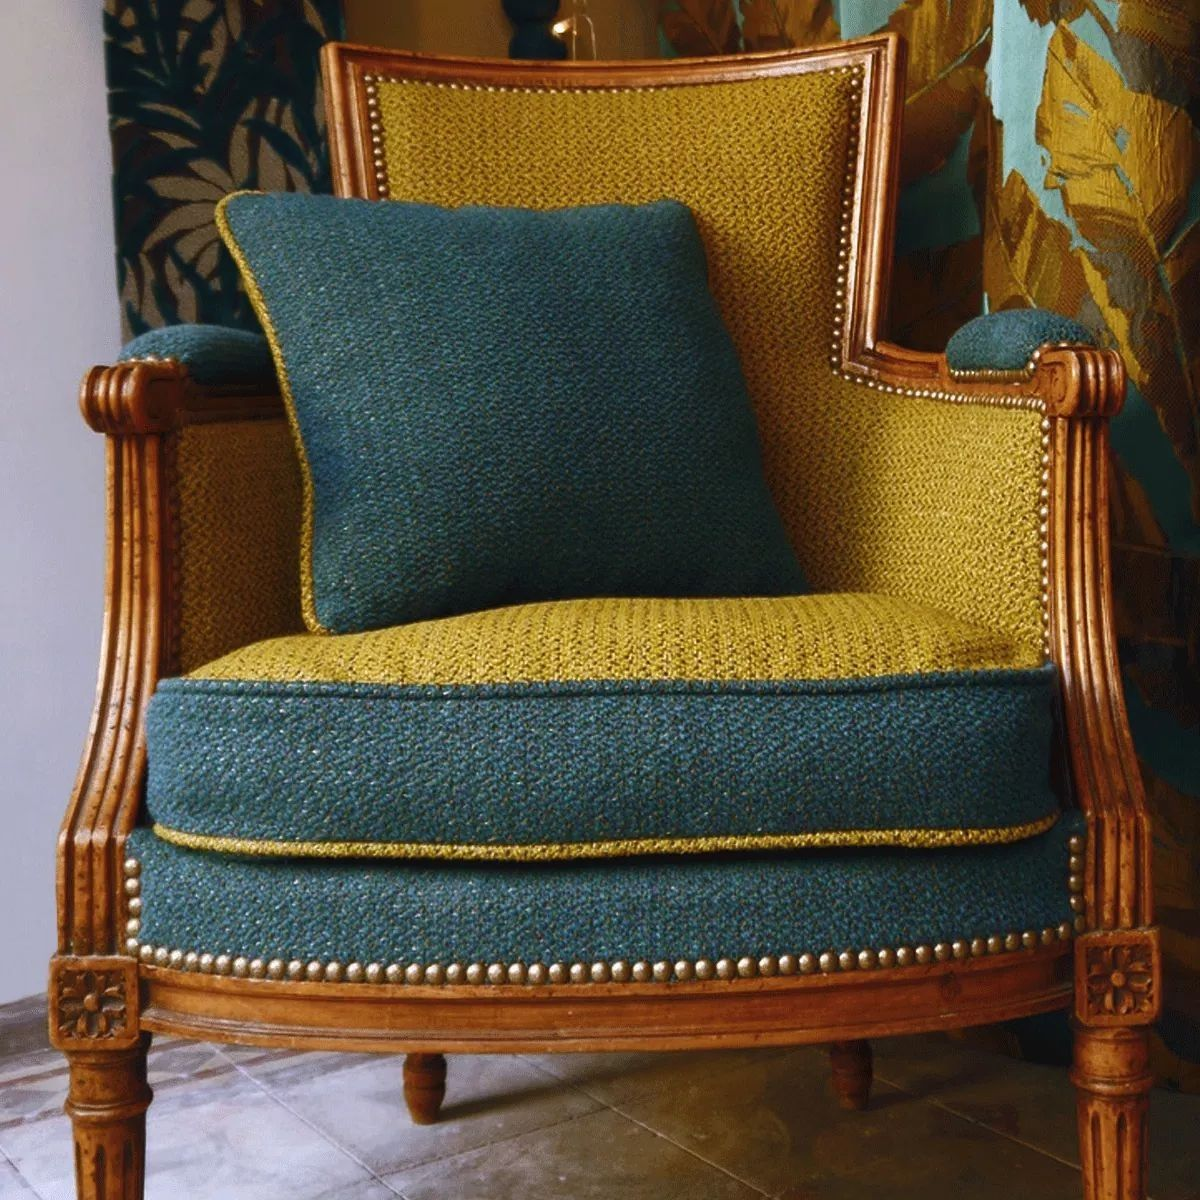 Pin By Amanda On Stunning Chairs Furniture Upholstery Chair Upholstery Chair Fabric